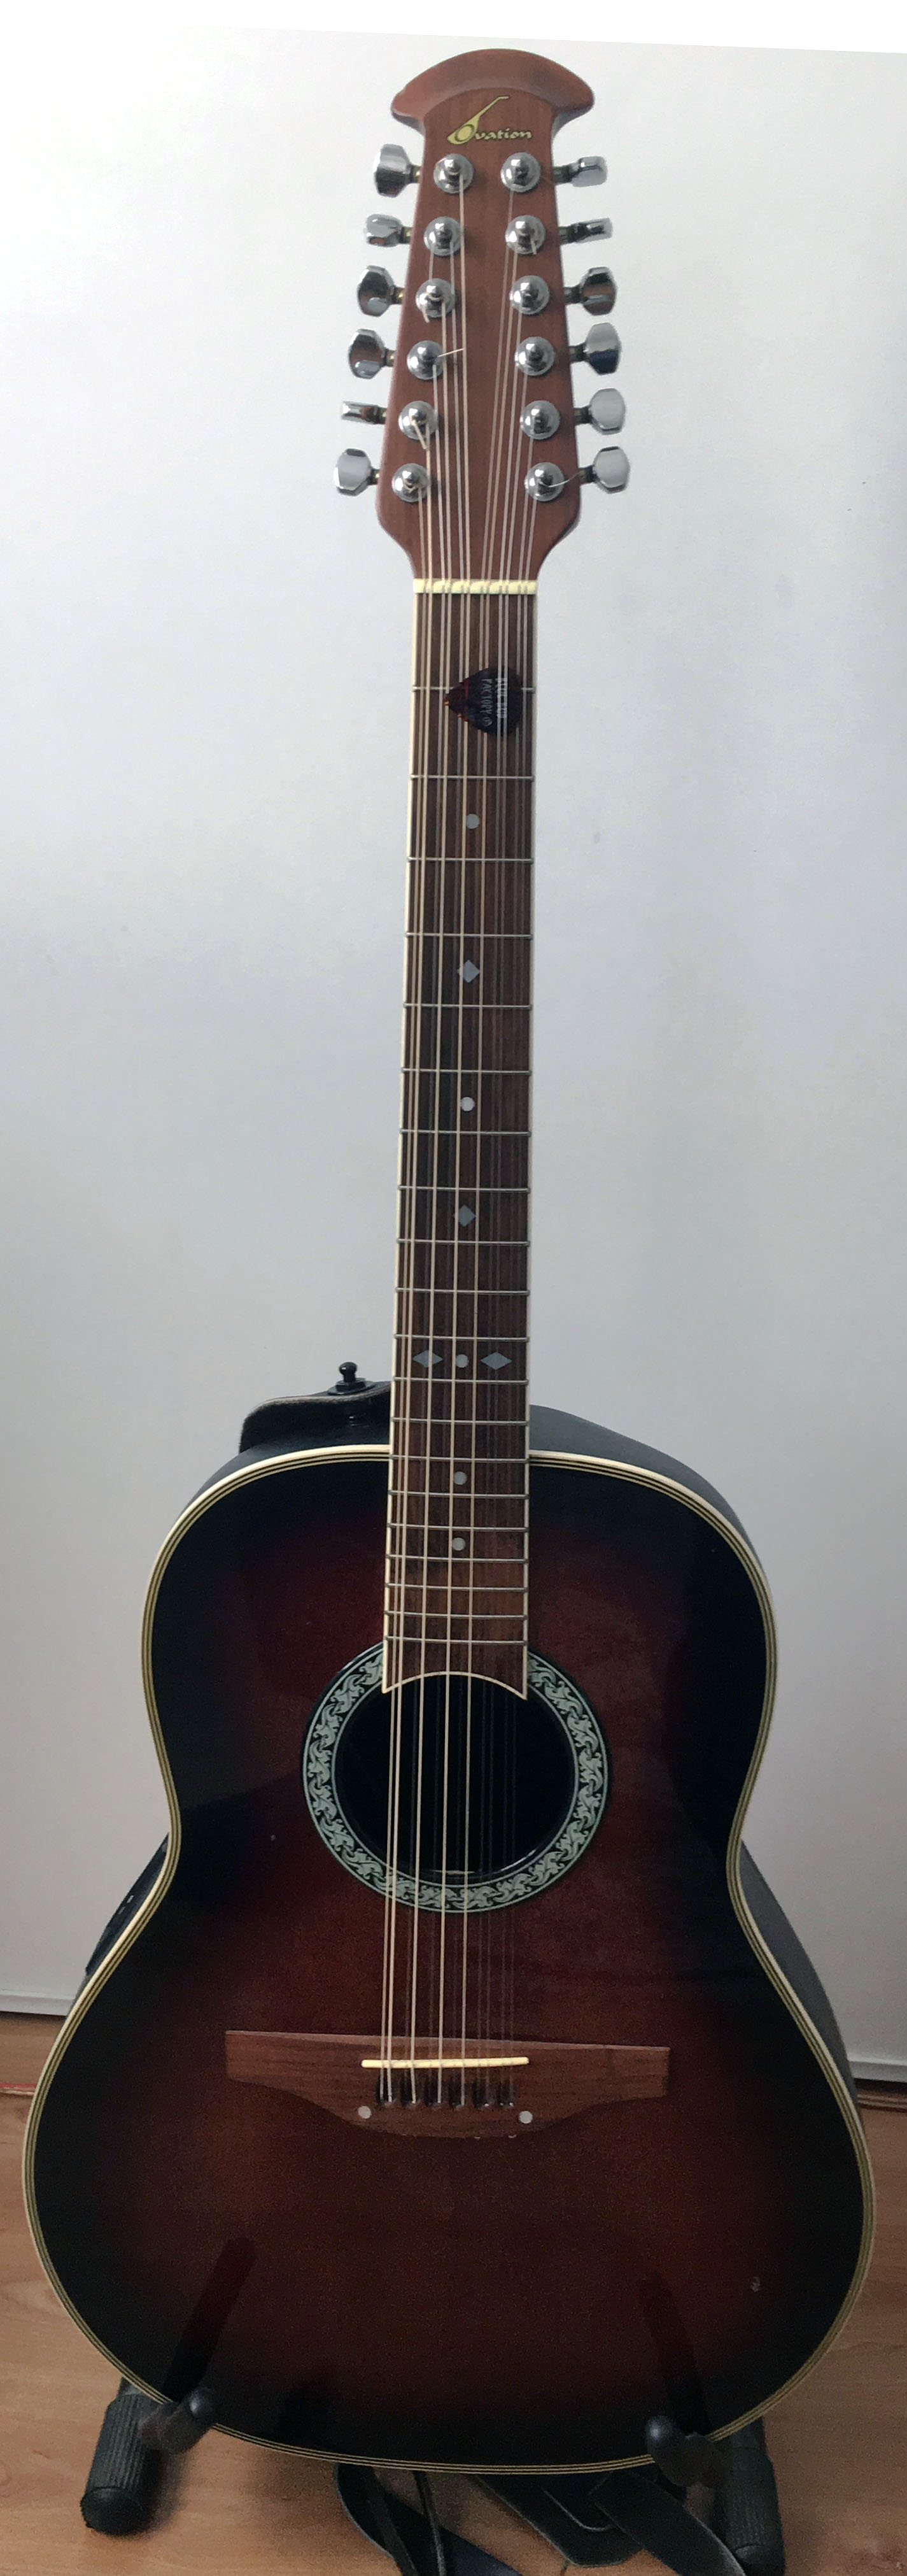 Ovation celebrity electro acoustic